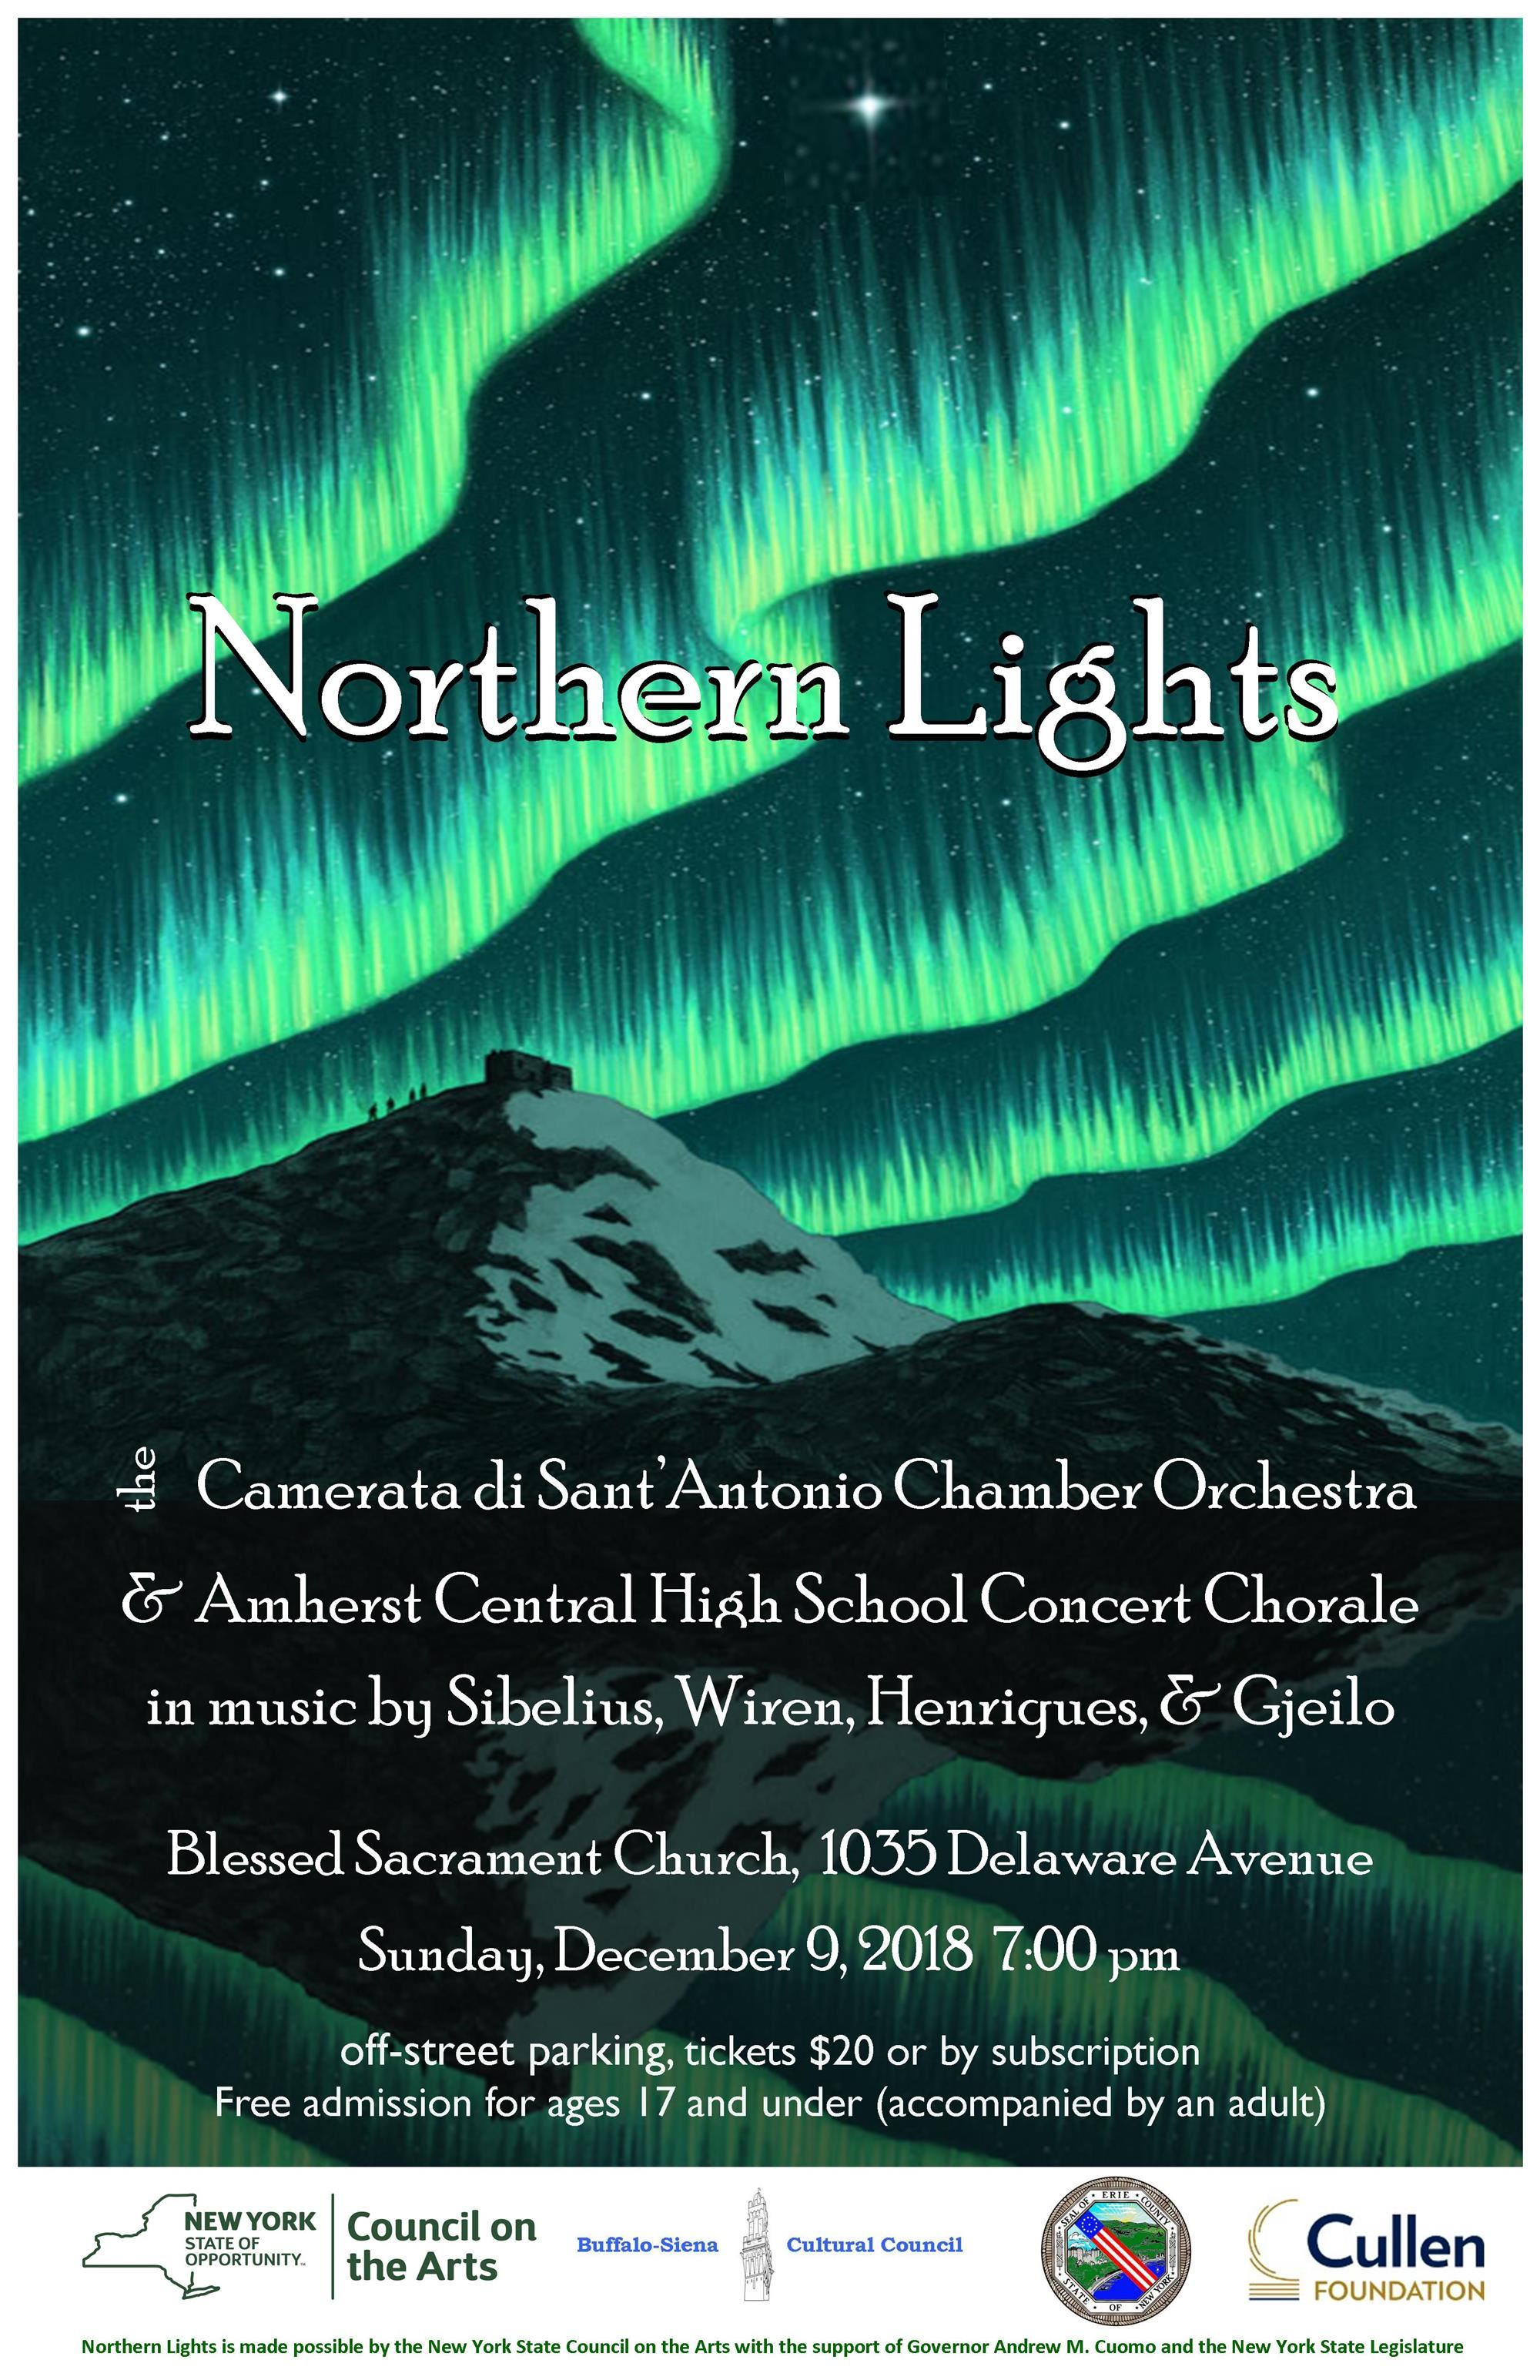 flier with information on Northern Lights